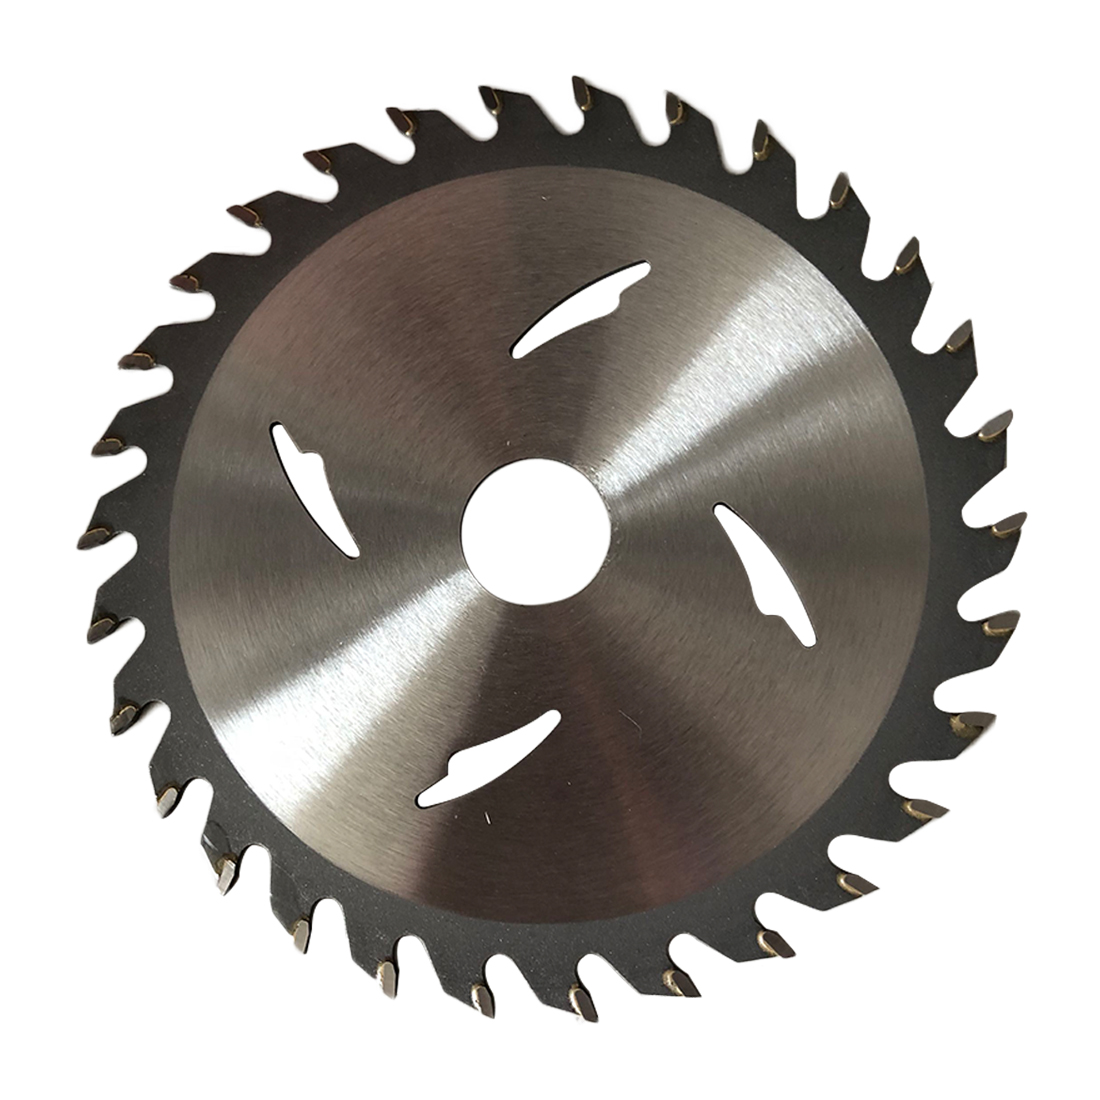 Wood Cutting Disc 1PC 125/110mm*20mm 24T/30T/40T TCT Saw Blade Carbide Tipped For DIY&Decoration General Wood Cutting